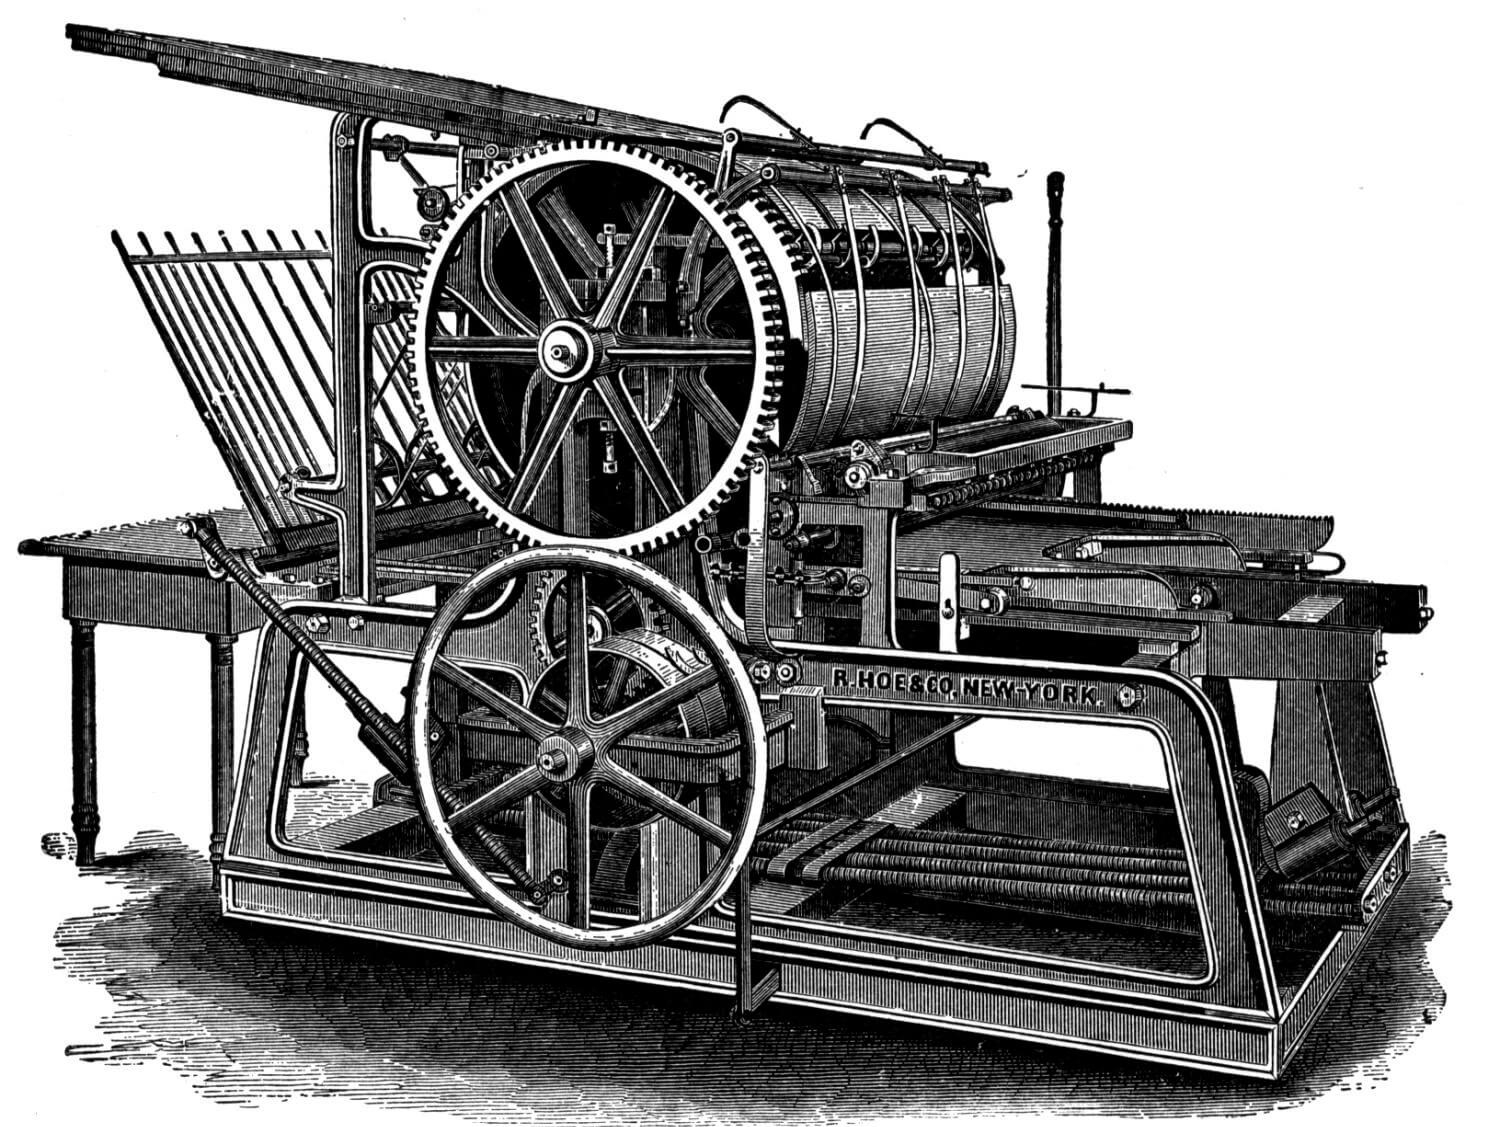 The History of Printing